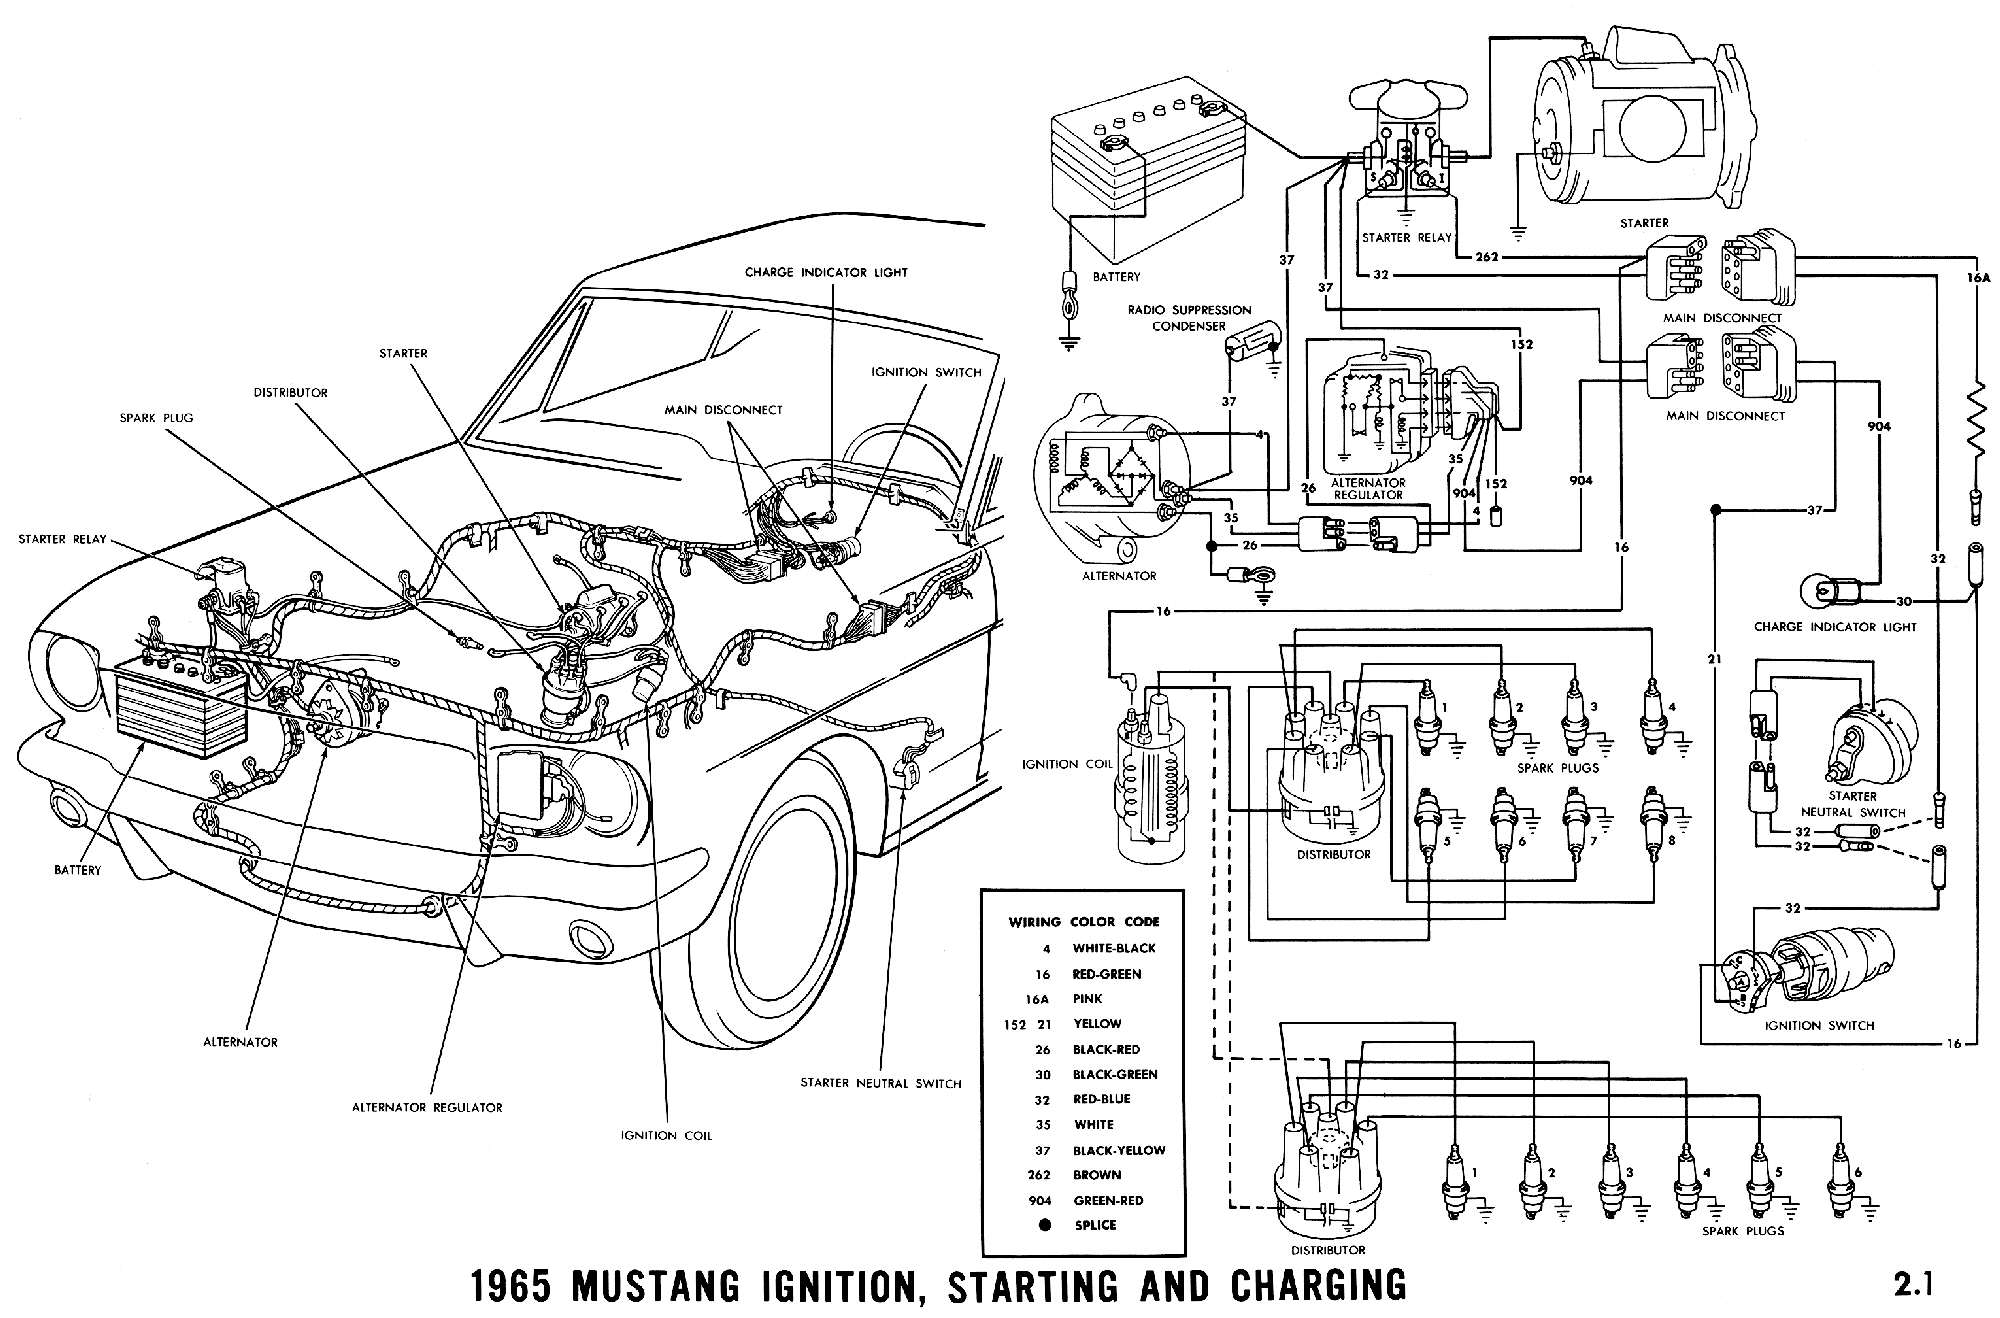 1965 mustang wiring diagrams average joe restoration rh averagejoerestoration com 66 mustang coupe wiring diagram 1966 mustang gt wiring diagram